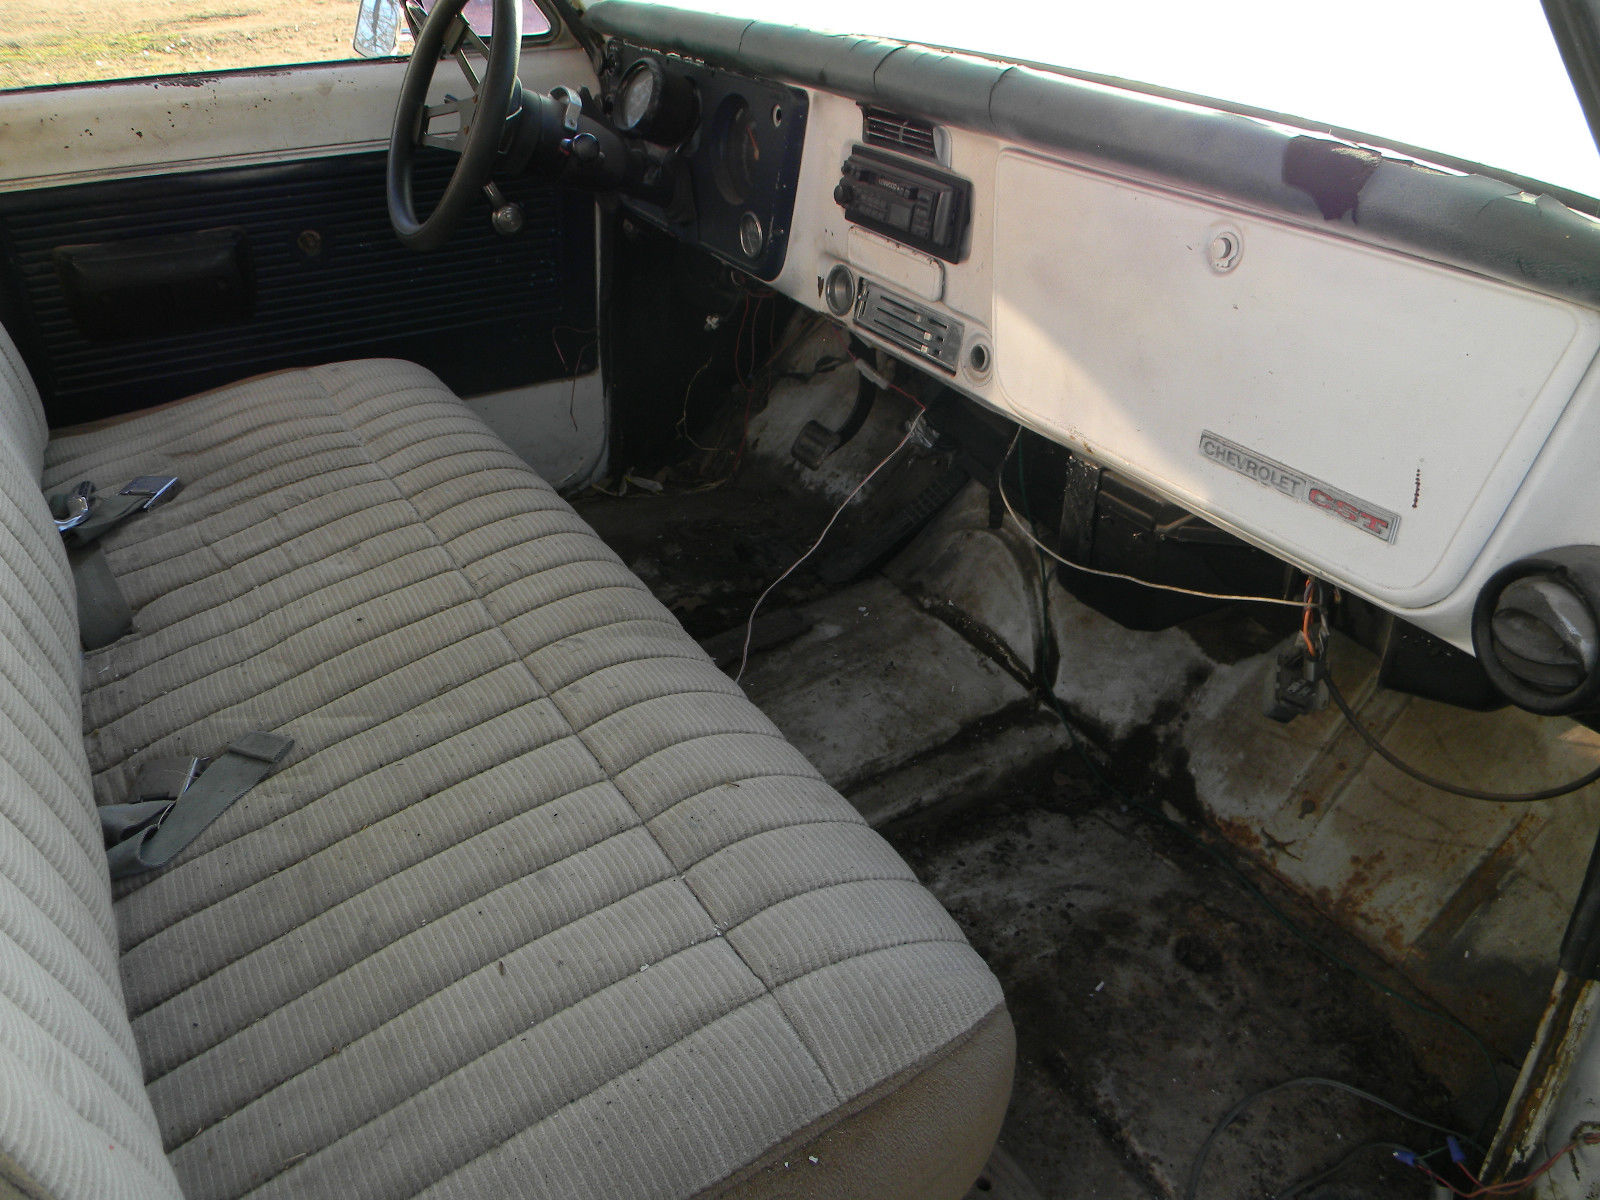 1968 Chevy C10 Swb Pickup Truck Project V8 A C Cab P S B 5 Lug 67 Technical Specifications Of Chevrolet 10